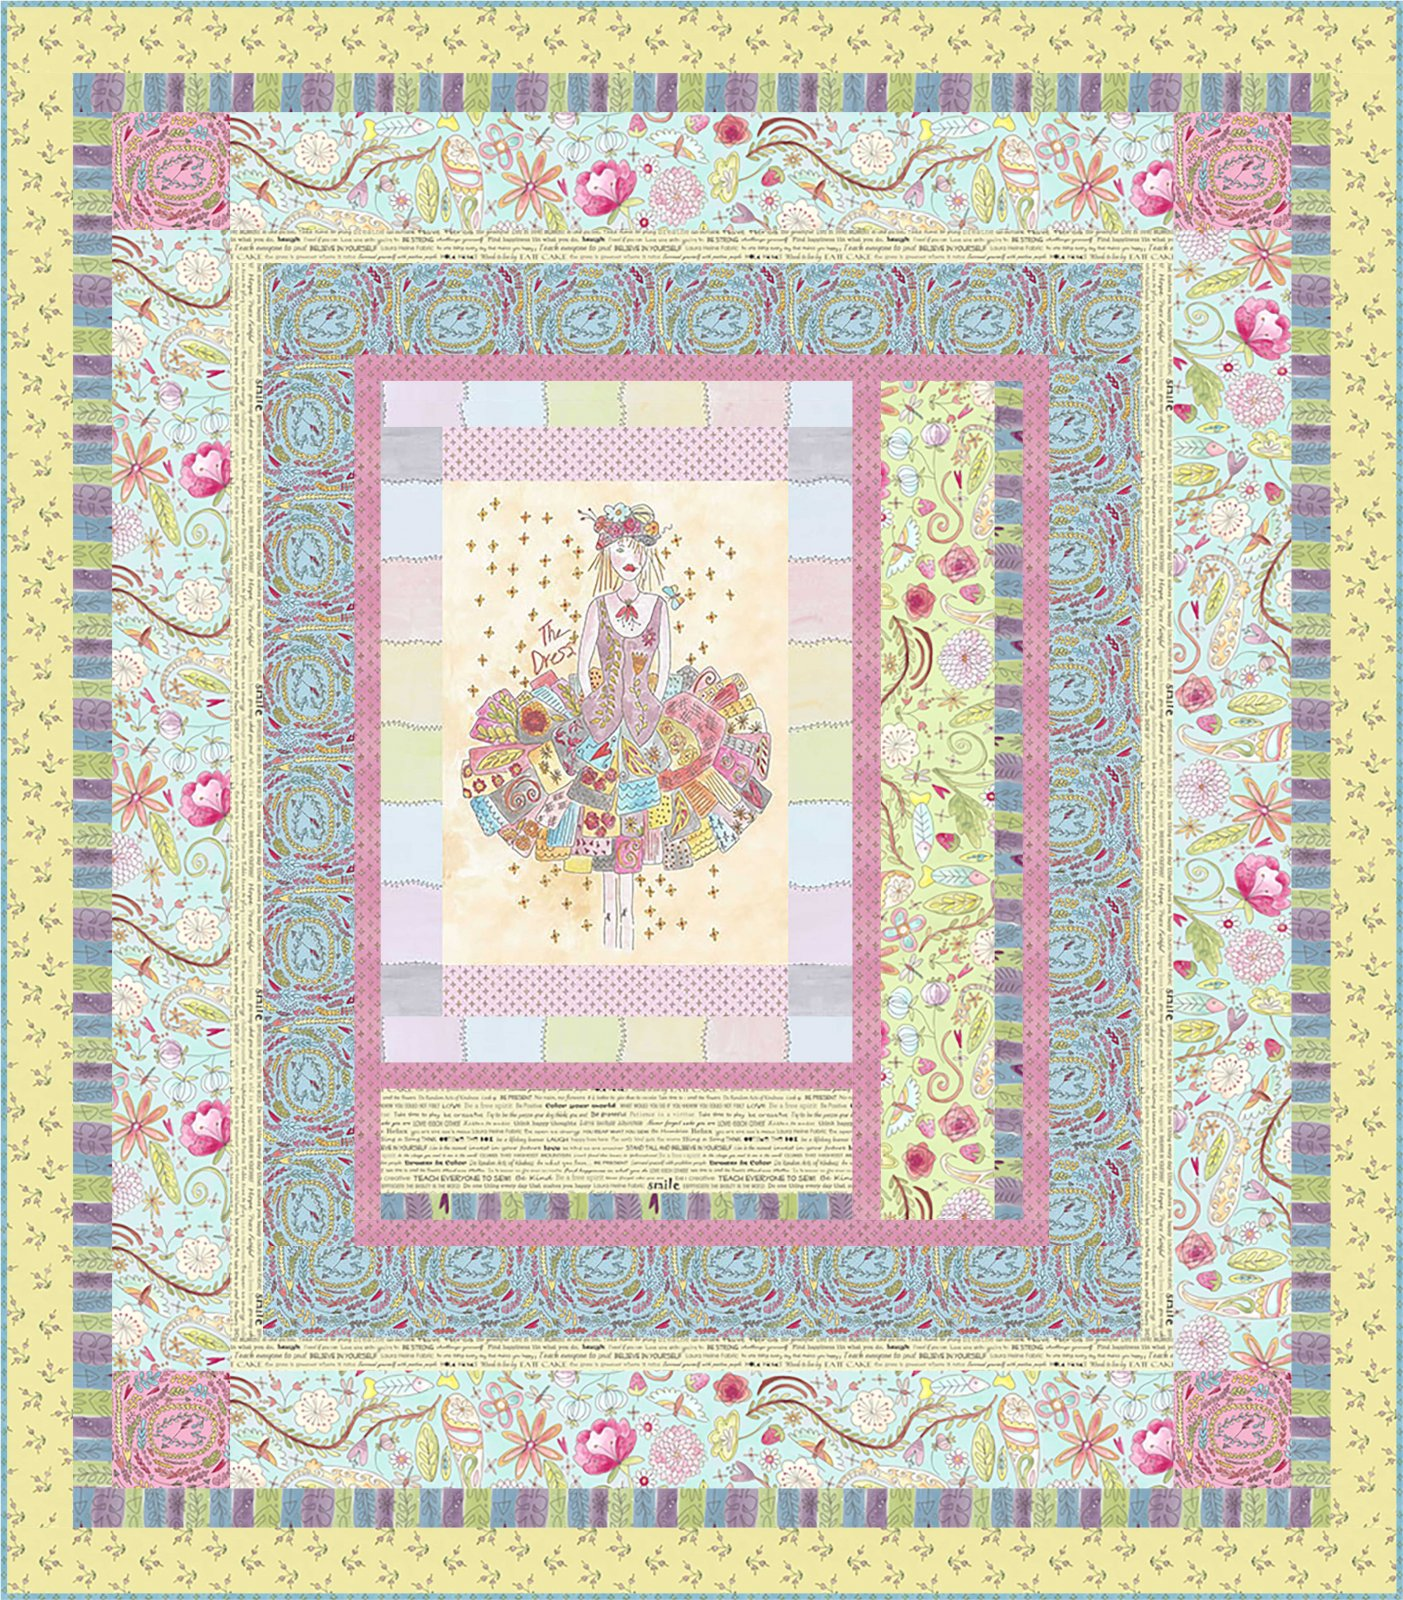 whole best the on images pinterest caboodle block kits dreams quilt country summer patterns countrycaboodle